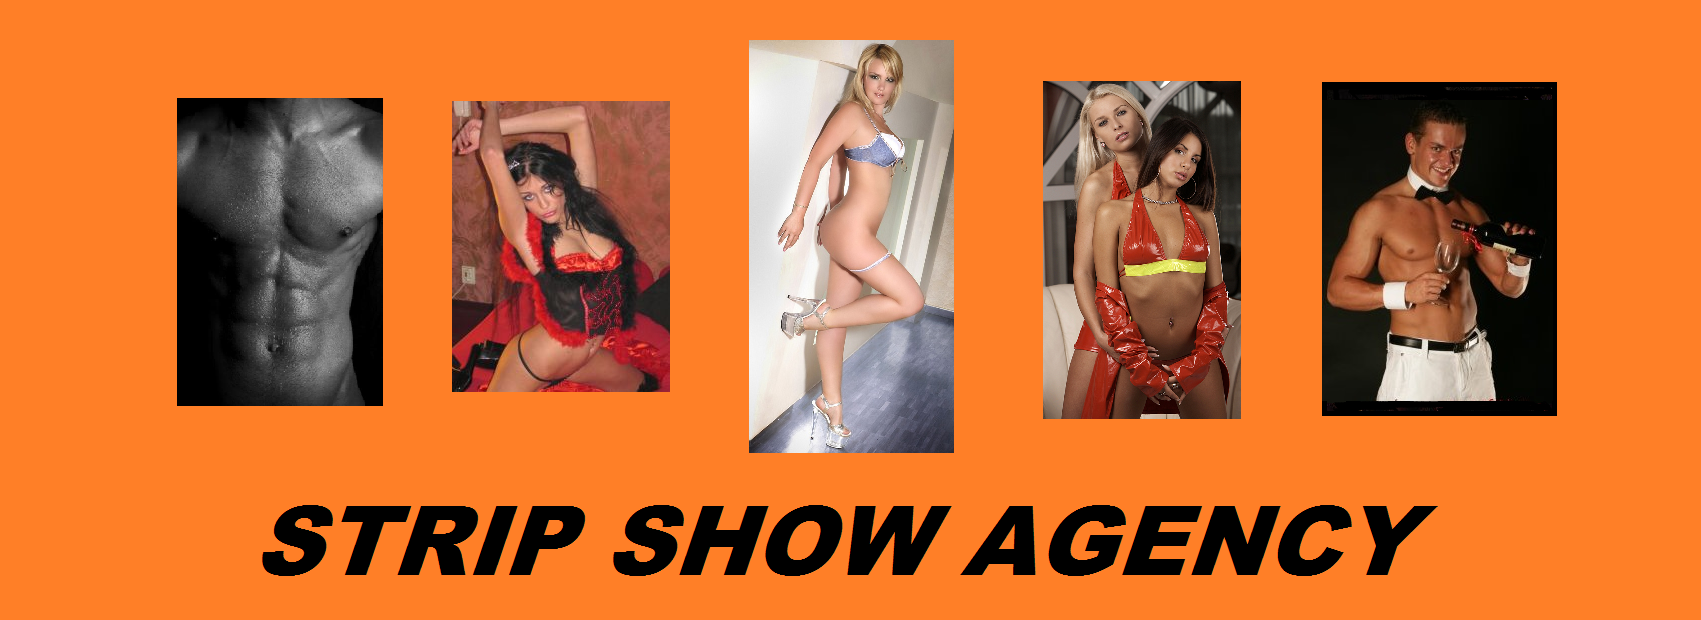 strip show - strip..png